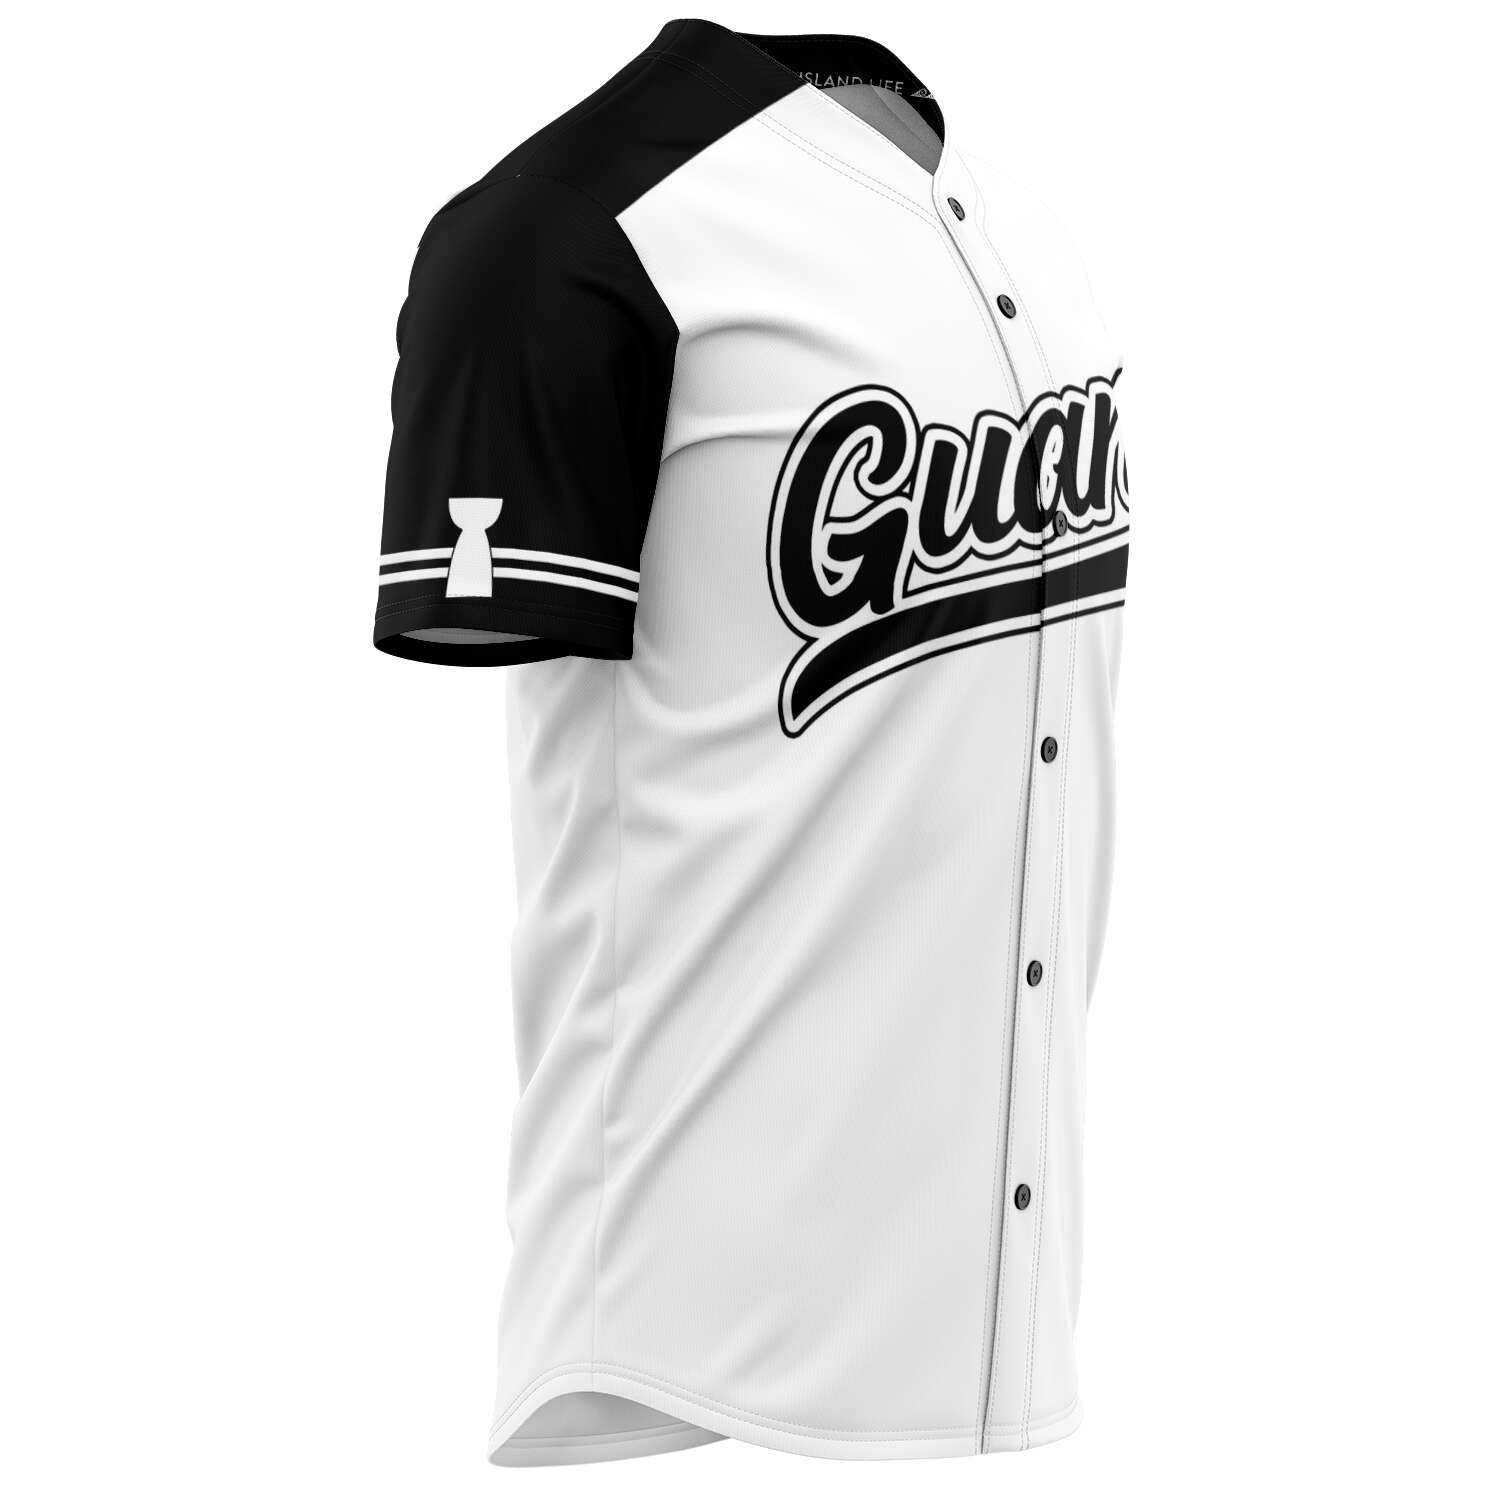 Guam Black and White Baseball Jersey